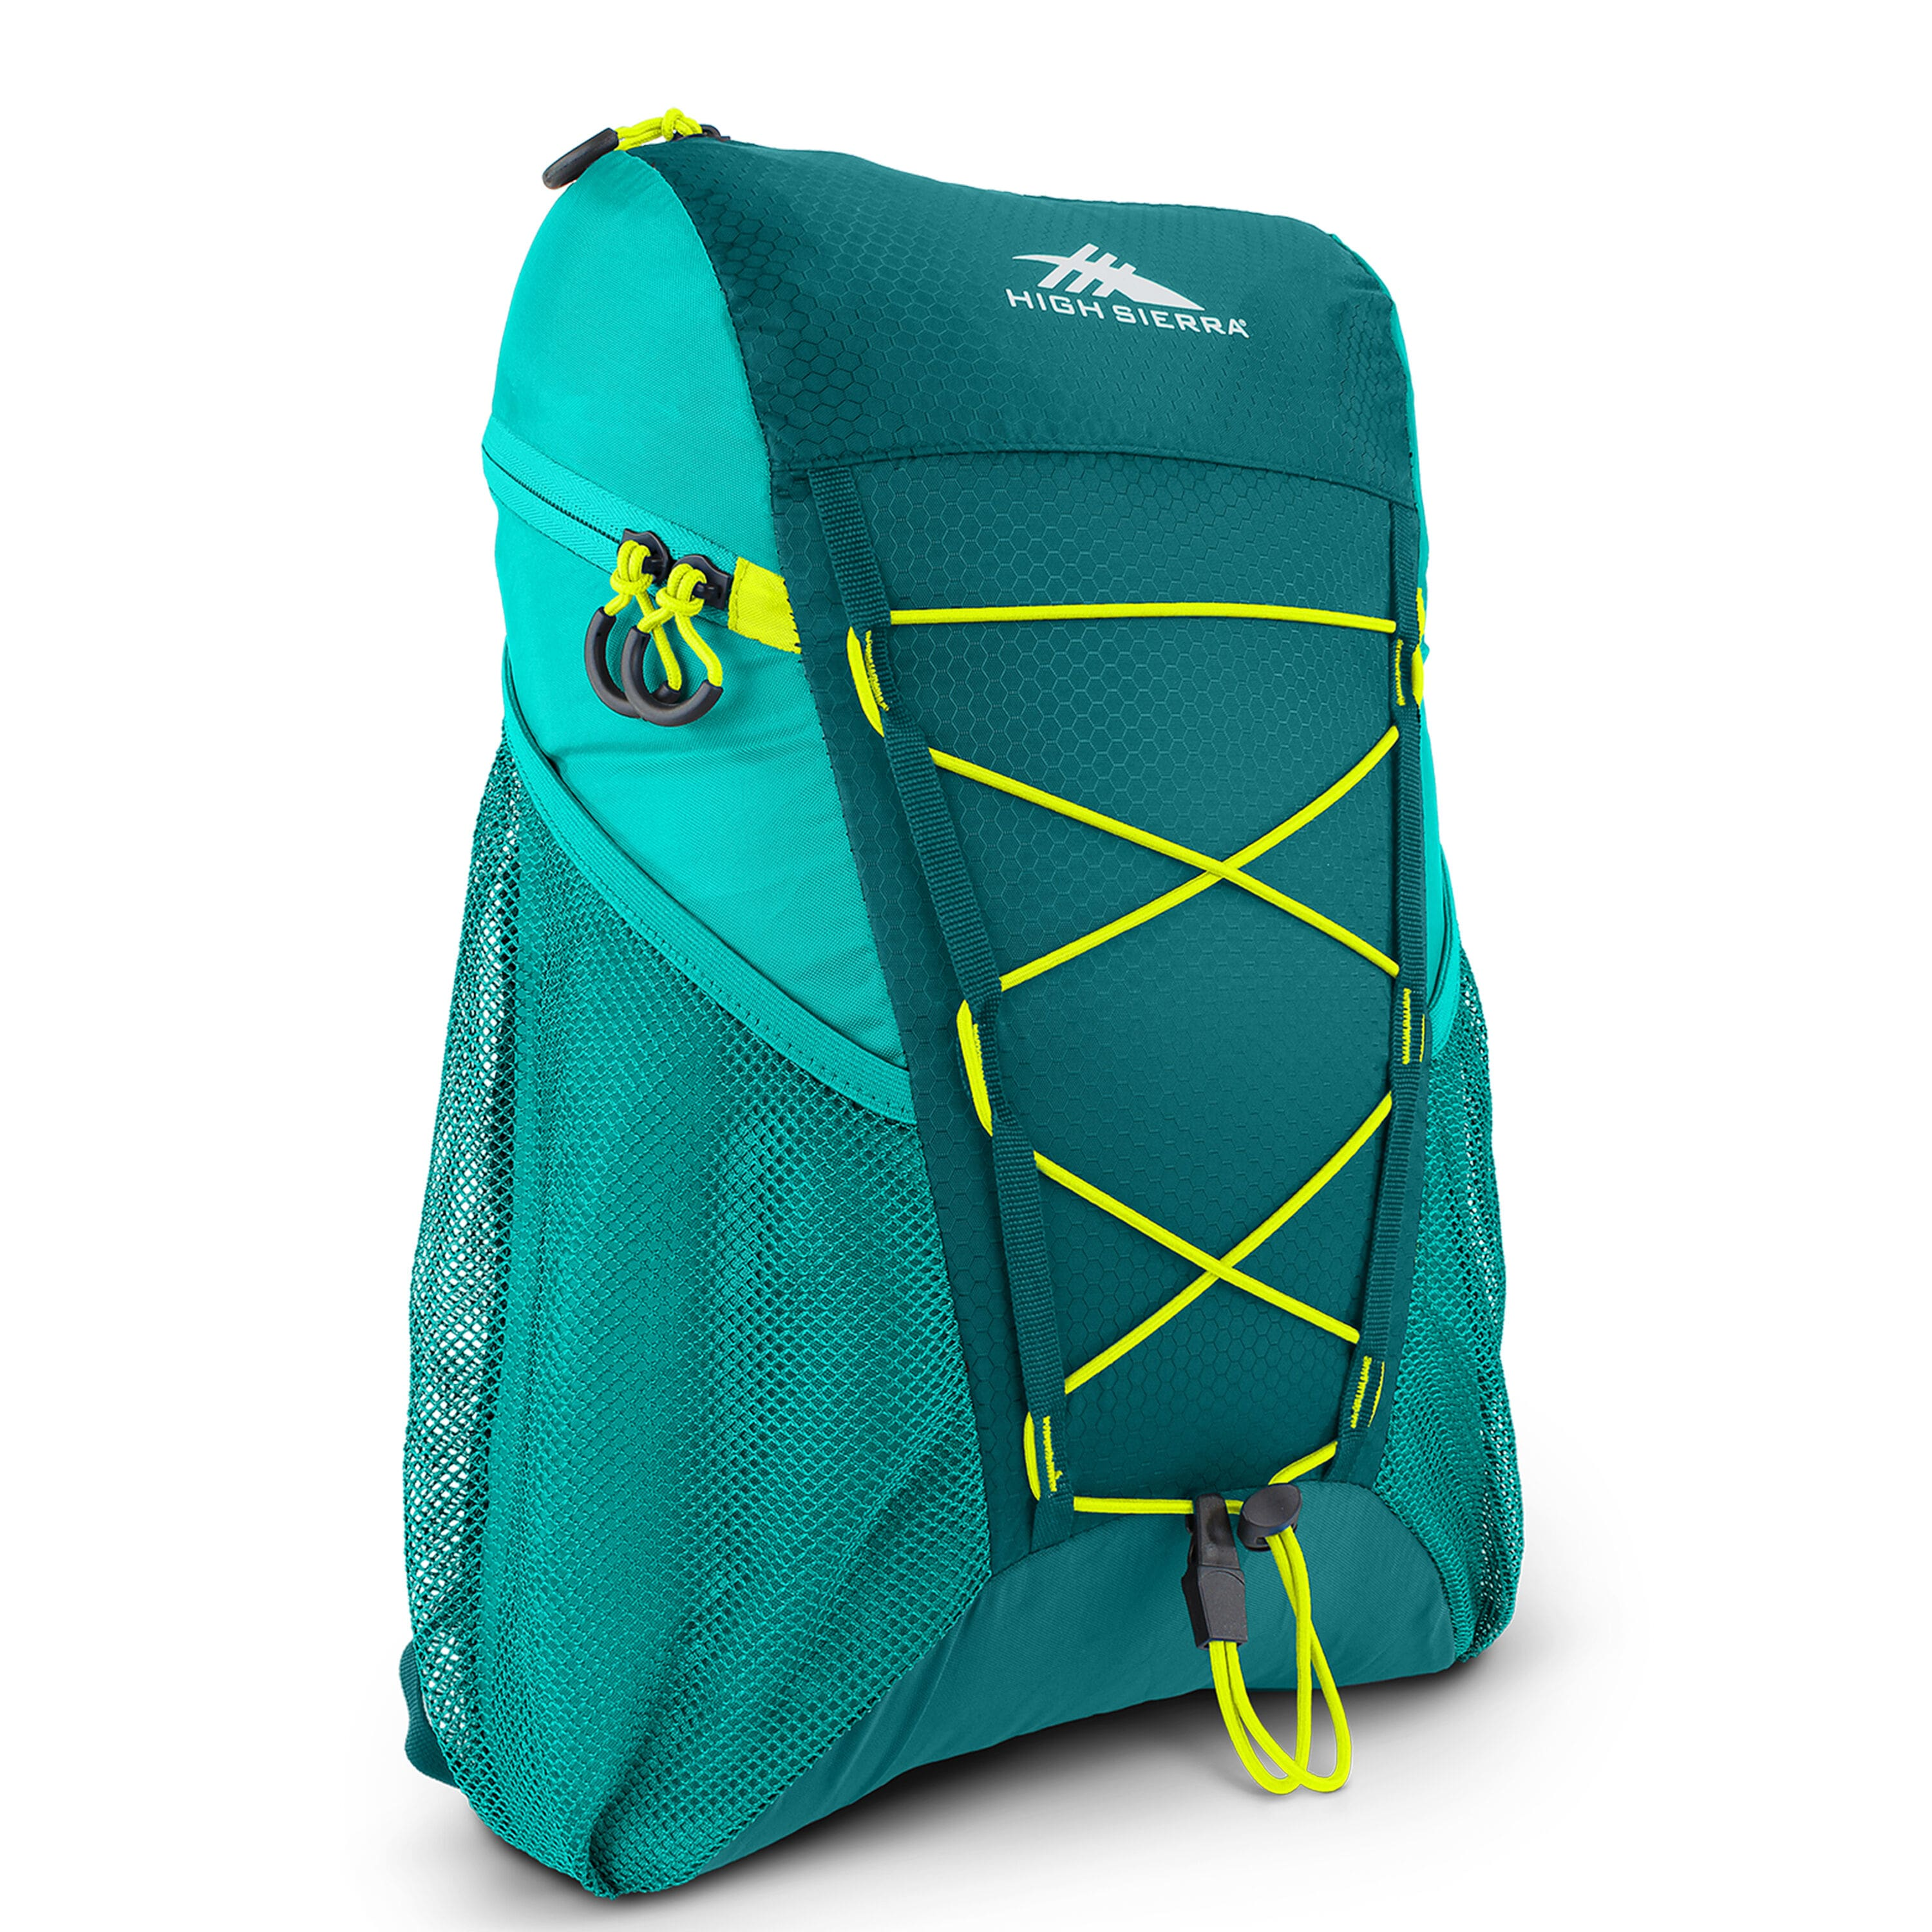 High Sierra Pack-N-Go 2 18L Sport Backpack (Sea/Tropic Teal/Zest) $12.60 + Free Shipping